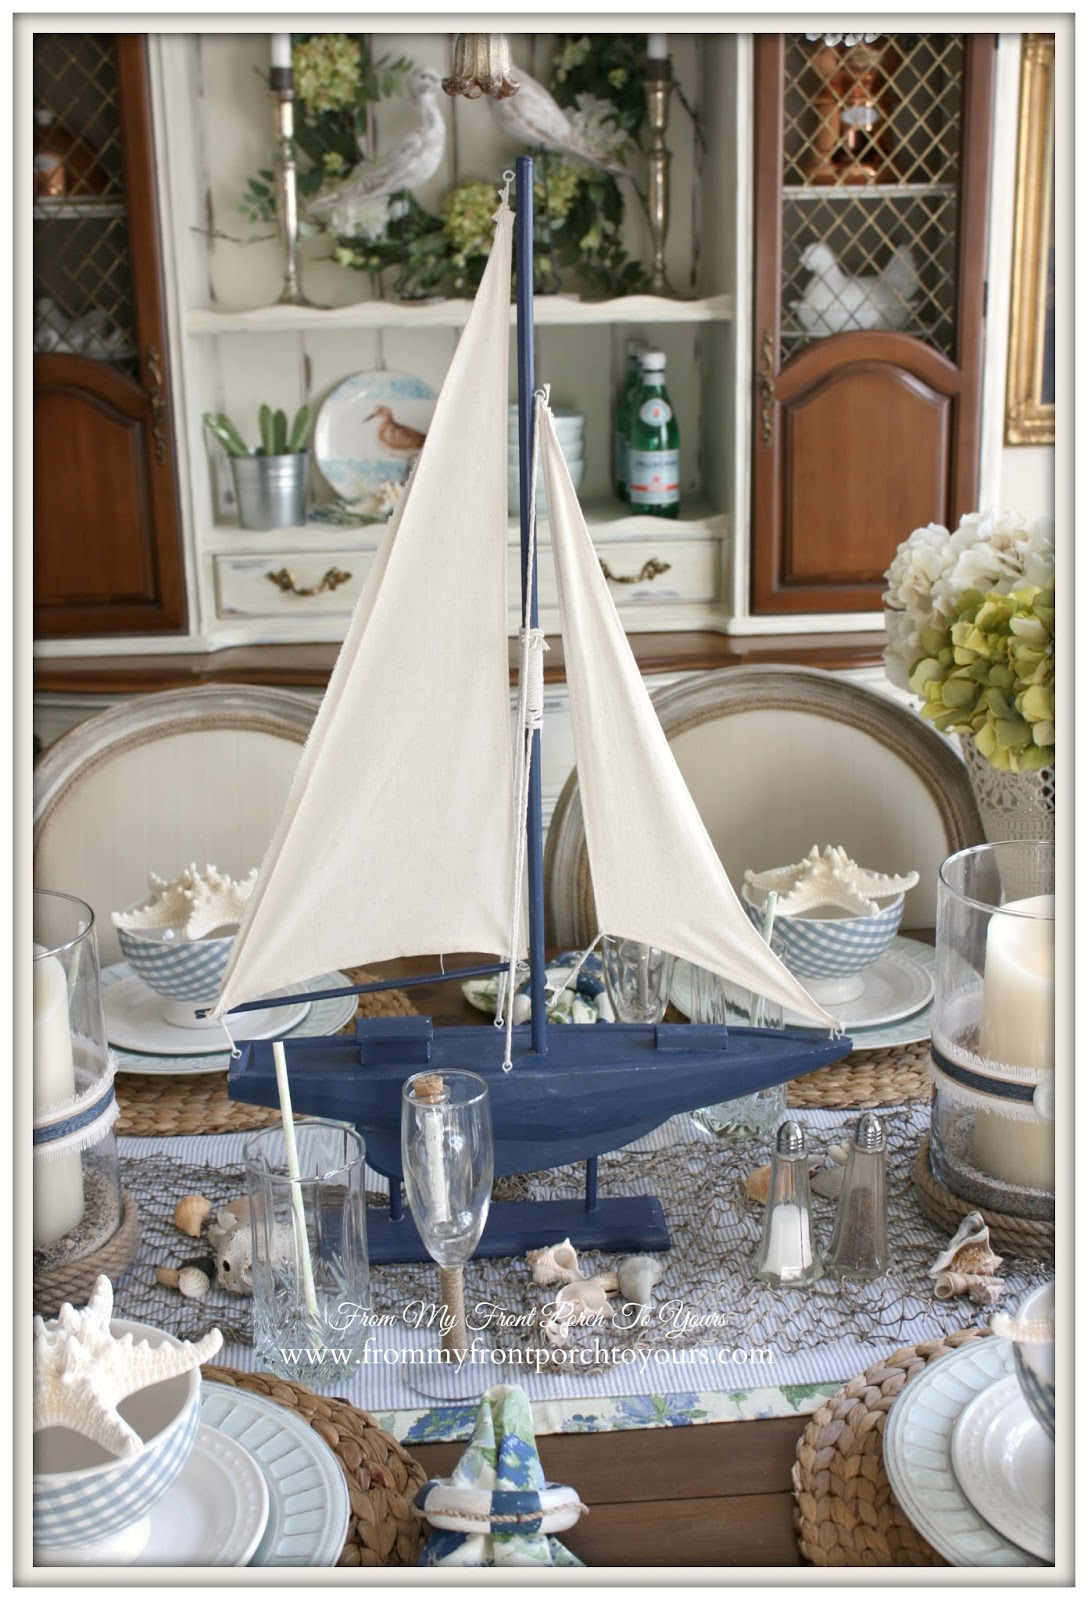 From My Front Porch To Yours French Farmhouse Nautical  : nauticaldiningroomboatIMG3975 from www.frommyfrontporchtoyours.com size 1088 x 1600 jpeg 304kB